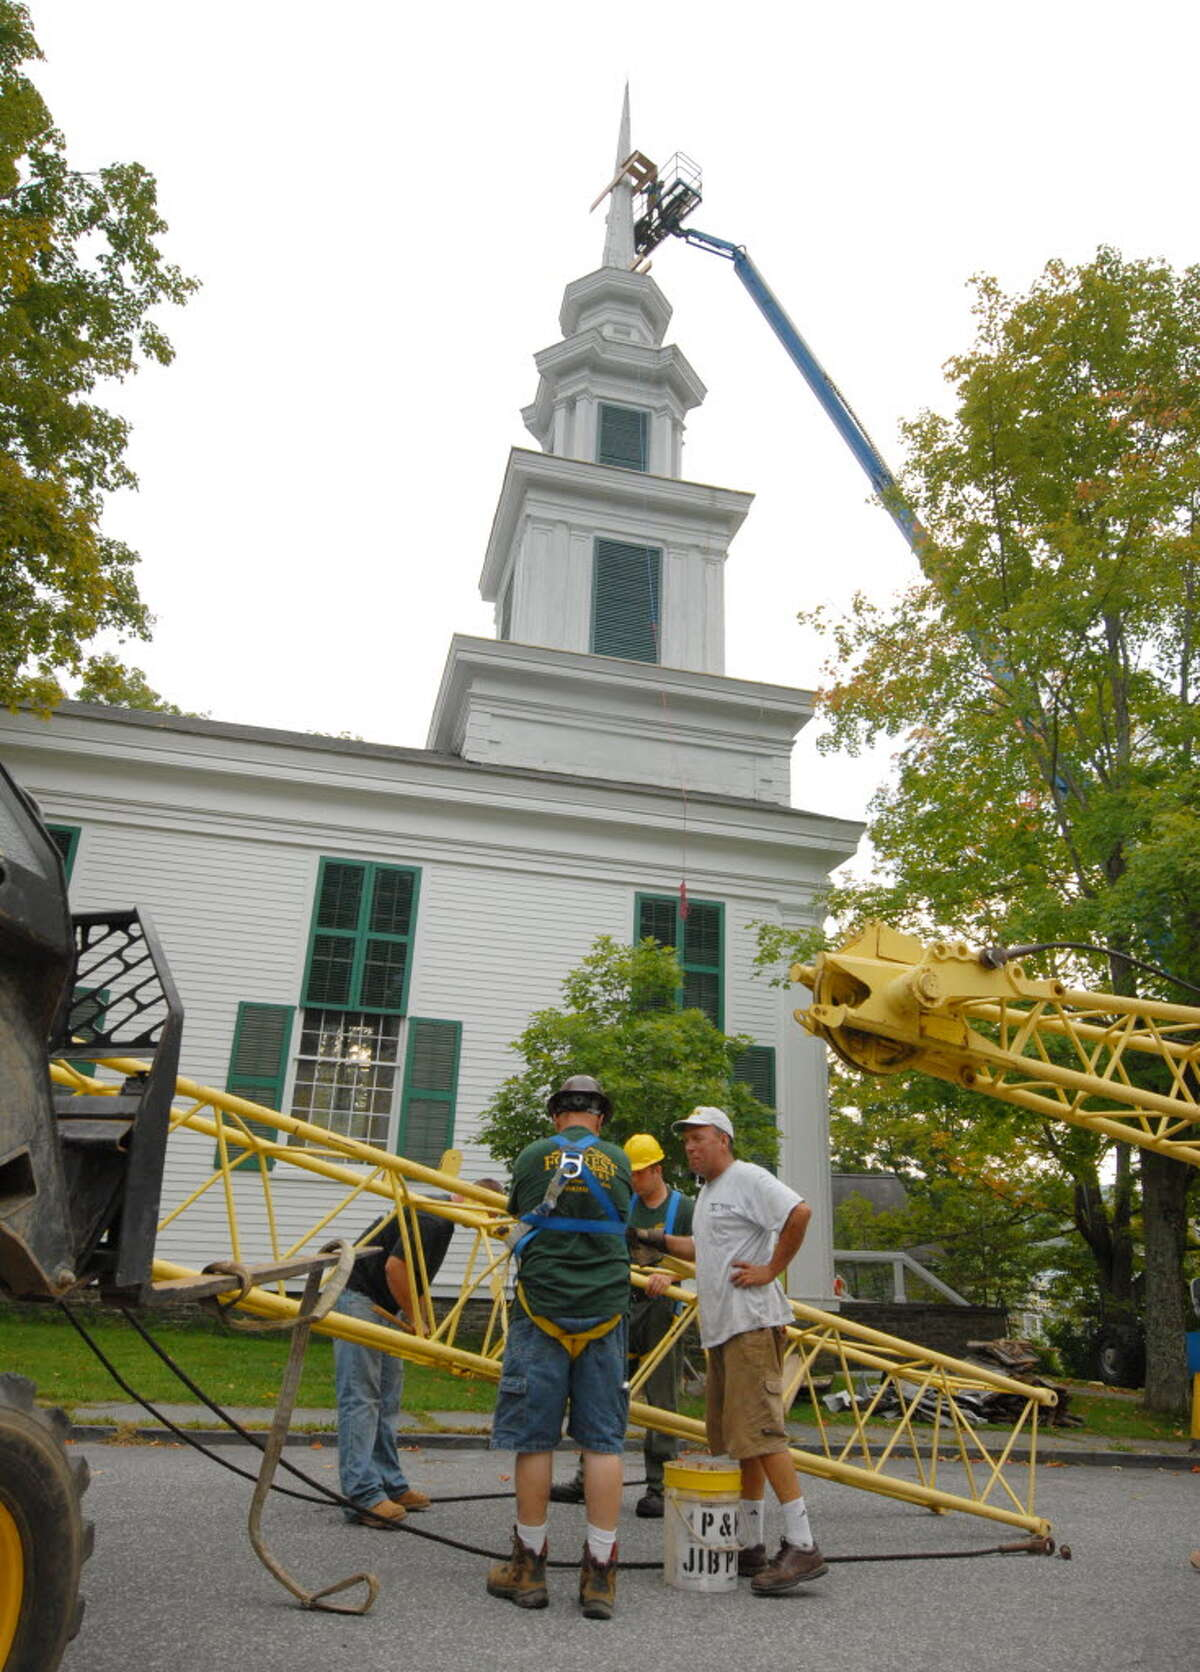 Workers prepare to remove the Rensselaerville Presbyterian Church spire for repairs in Rensselaerville Friday morning in Rensselaerville, September 3, 2010. (Will Waldron / Times Union)